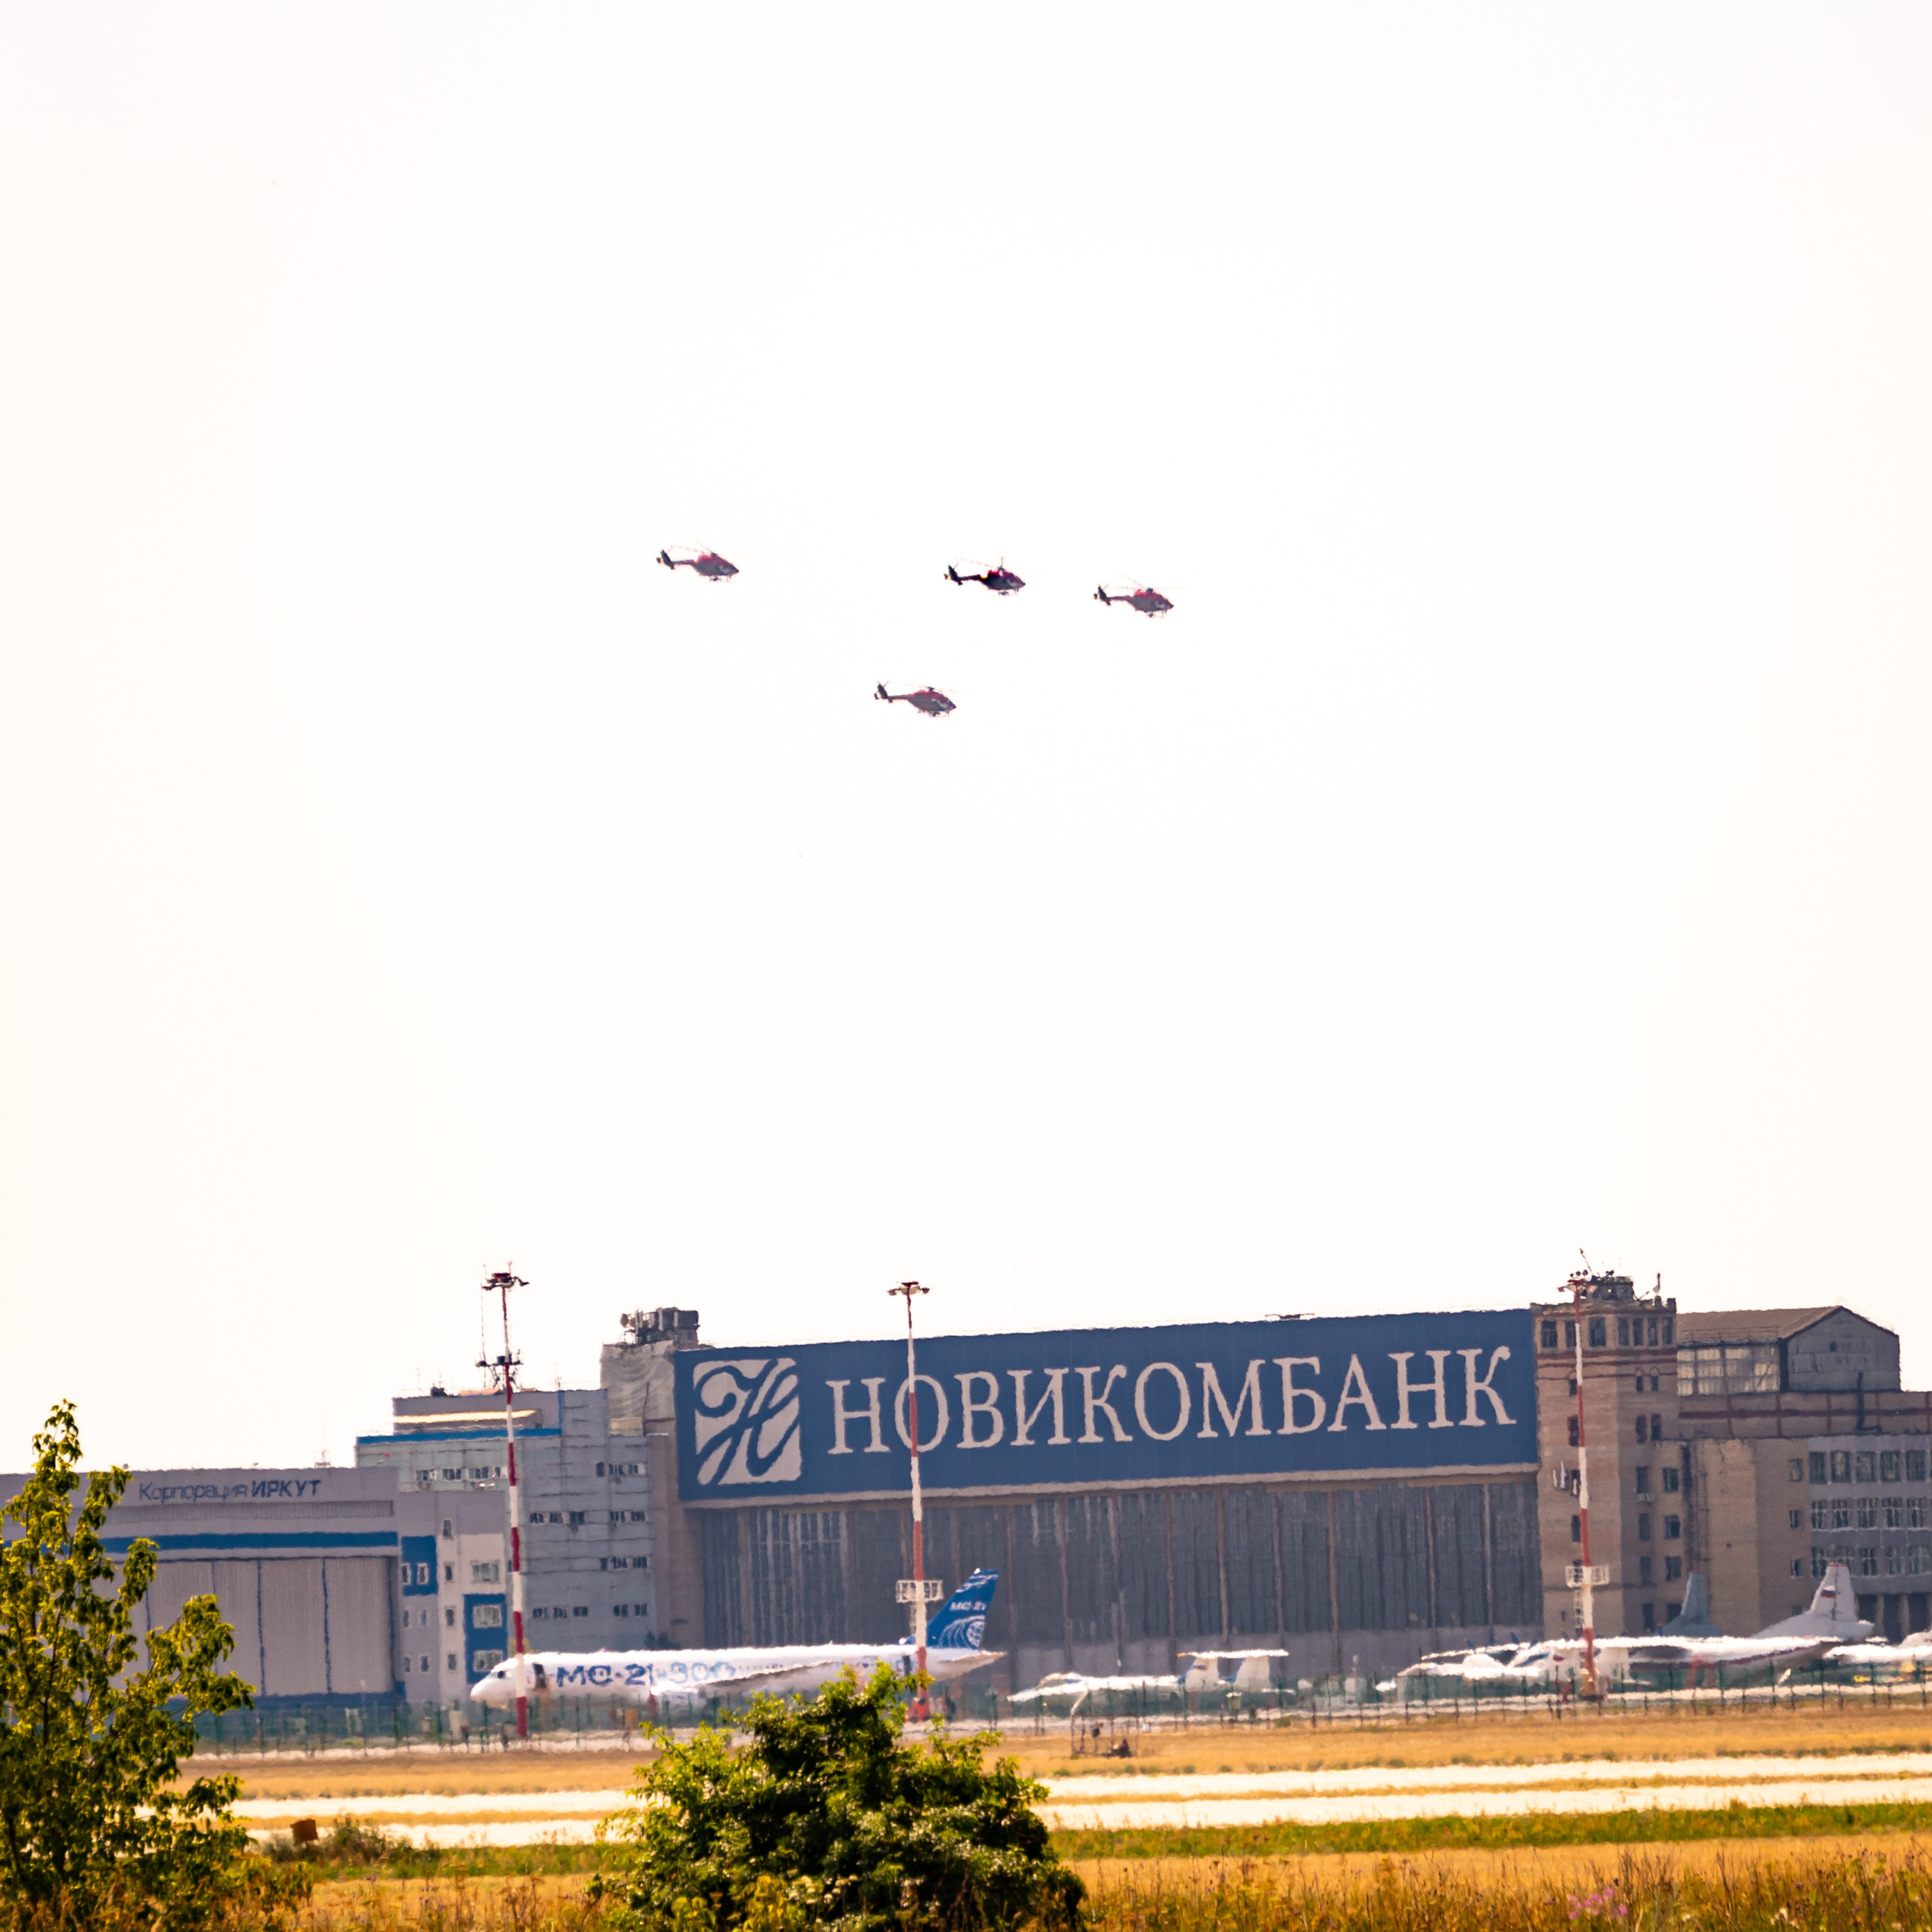 SARANG TO PERFORM AT MAKS AIR SHOW IN RUSSIA 20 JULY 2021